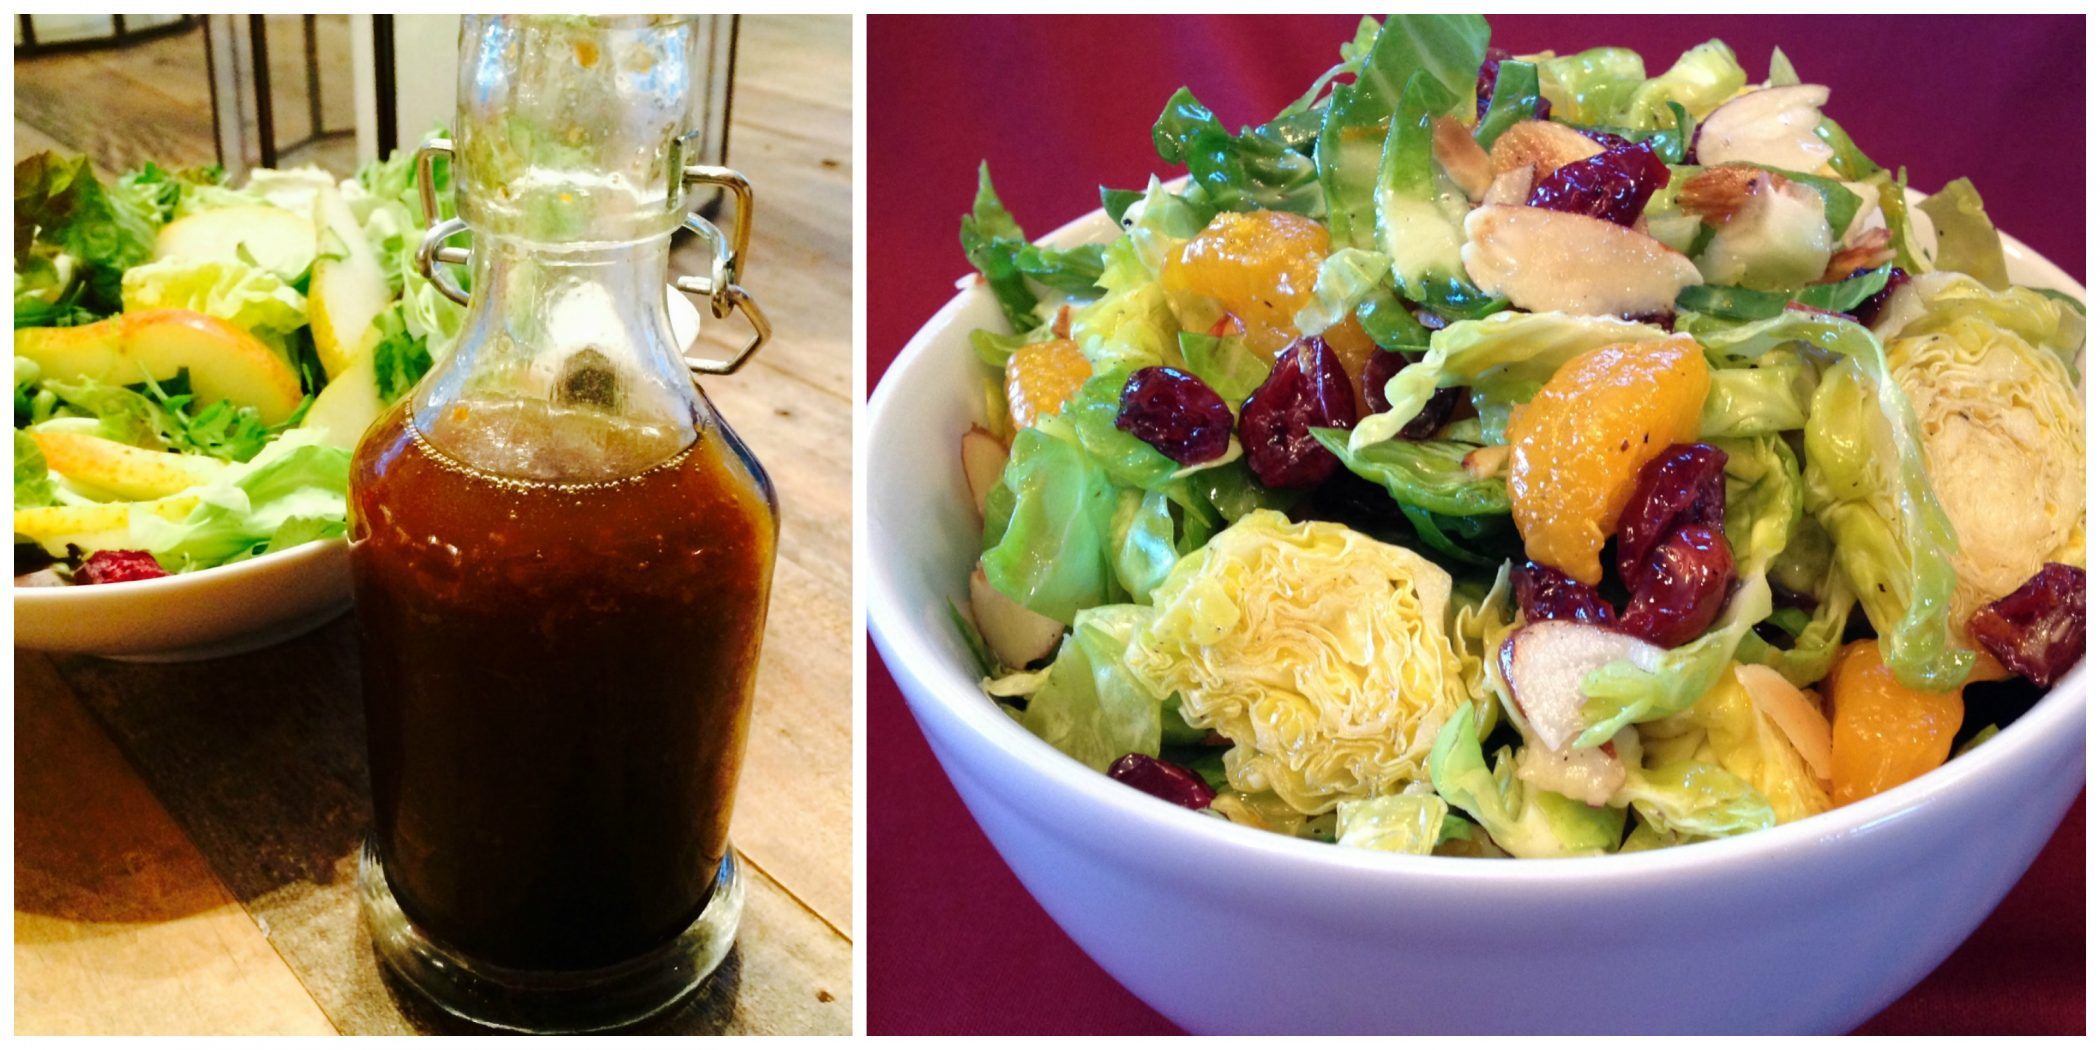 Honey Orange Balsamic Vinaigrette and Brussels Sprouts Salad